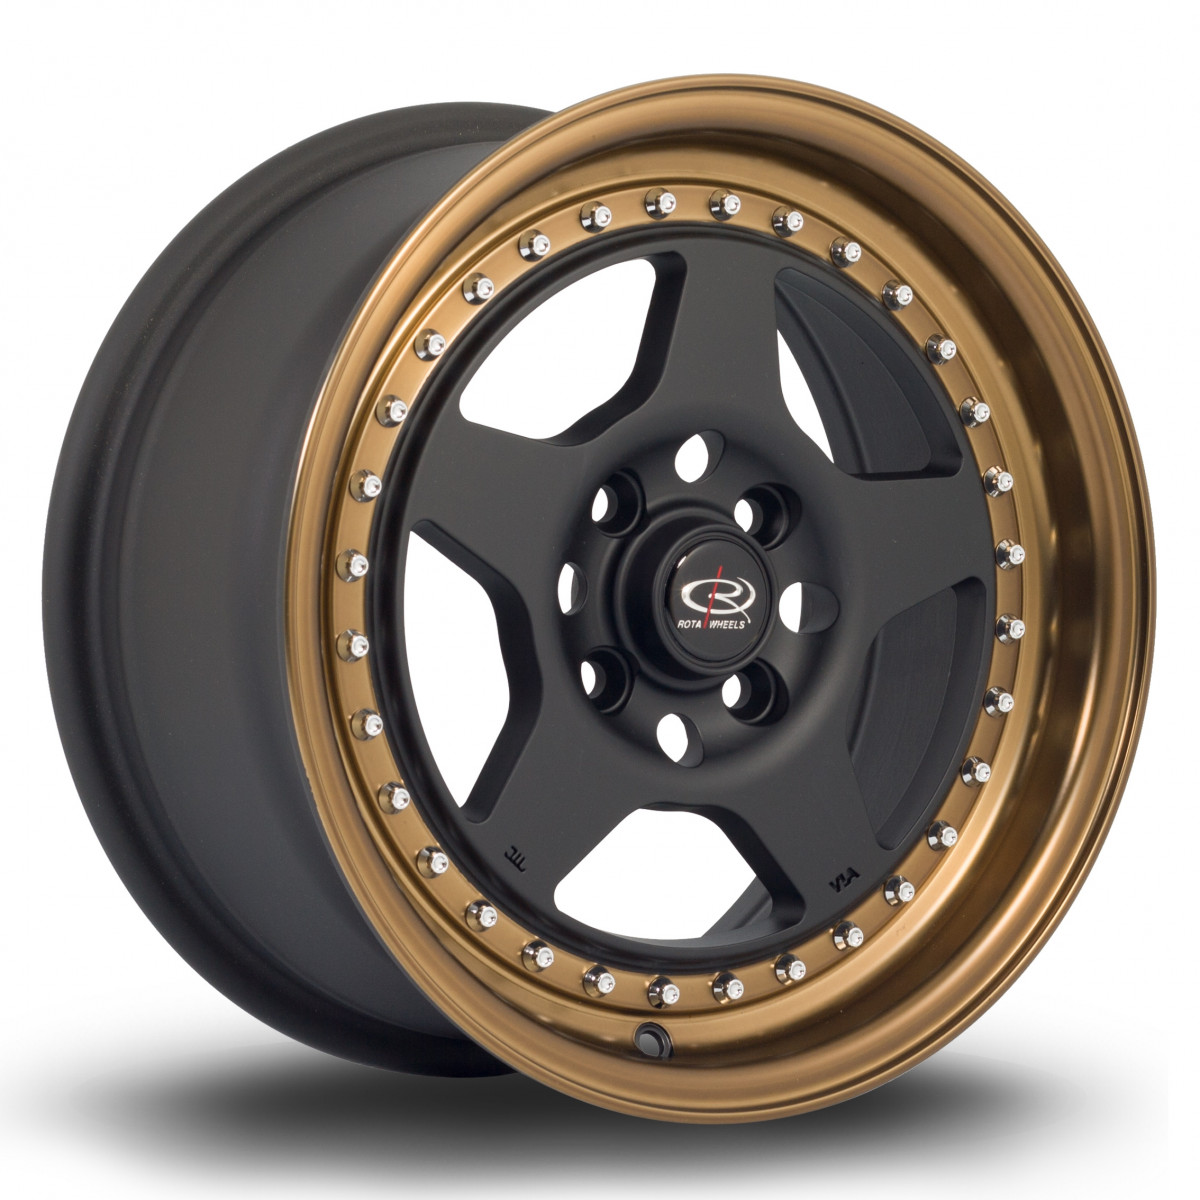 Kyusha 15x7 4x100 ET38 Flat Black with Speed Bronze Lip